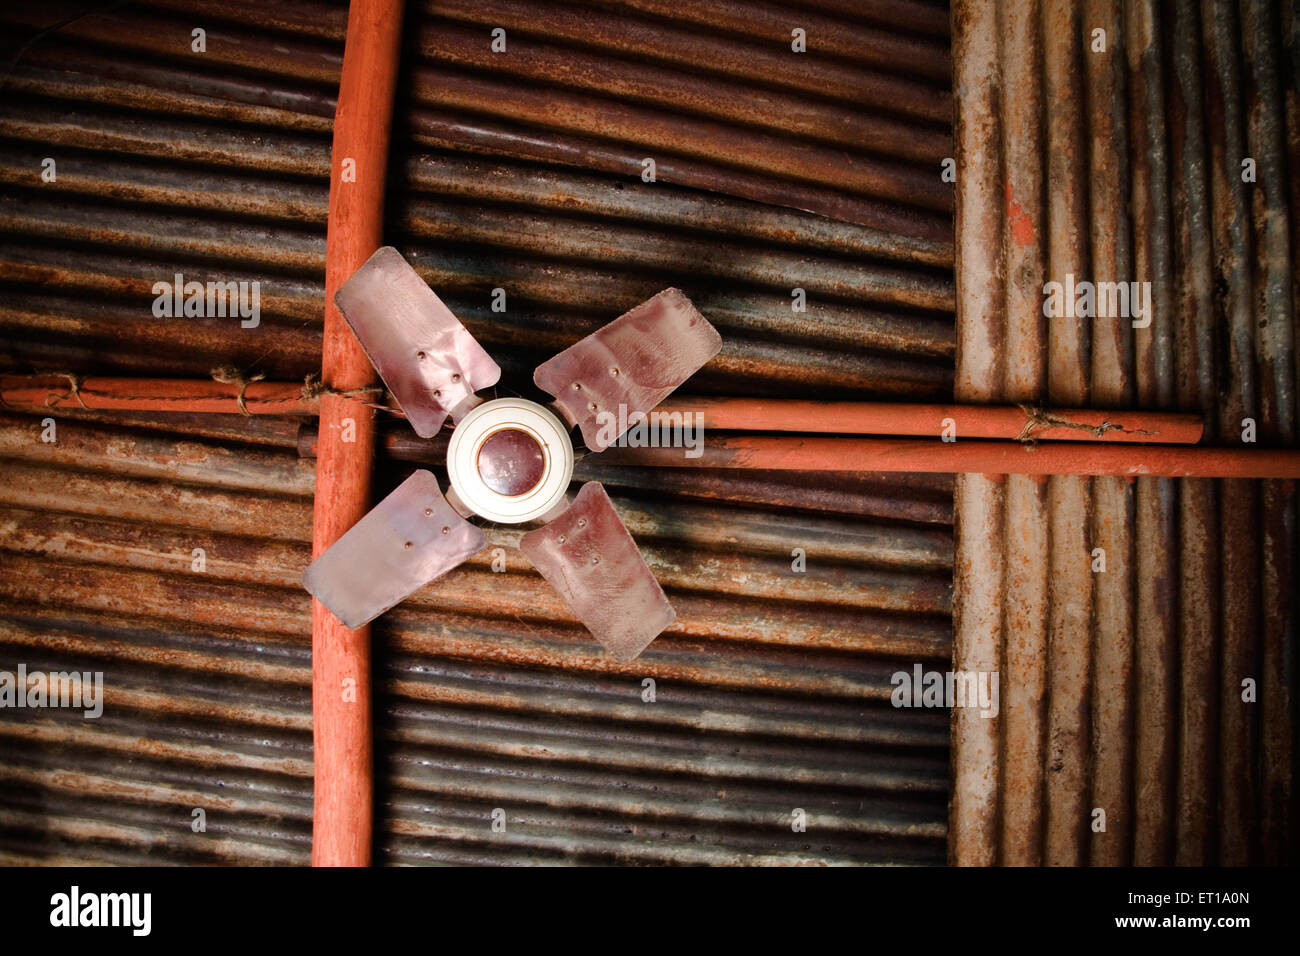 Ceiling fan ; Nandur ; Marathwada ; Maharashtra ; India - Stock Image